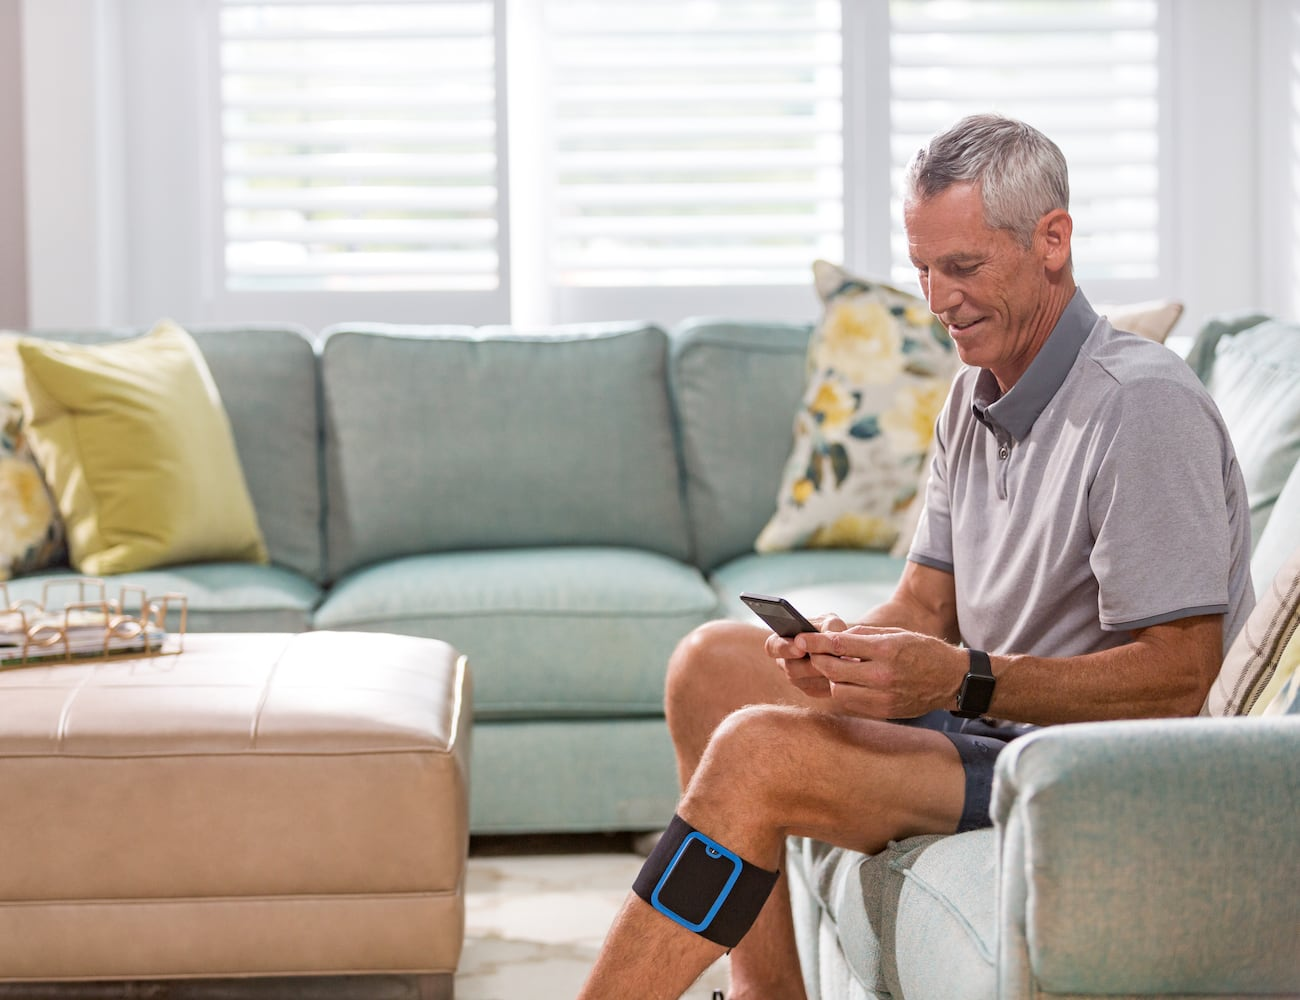 Quell 2.0 Wearable Pain Relief Device helps relieve chronic pain